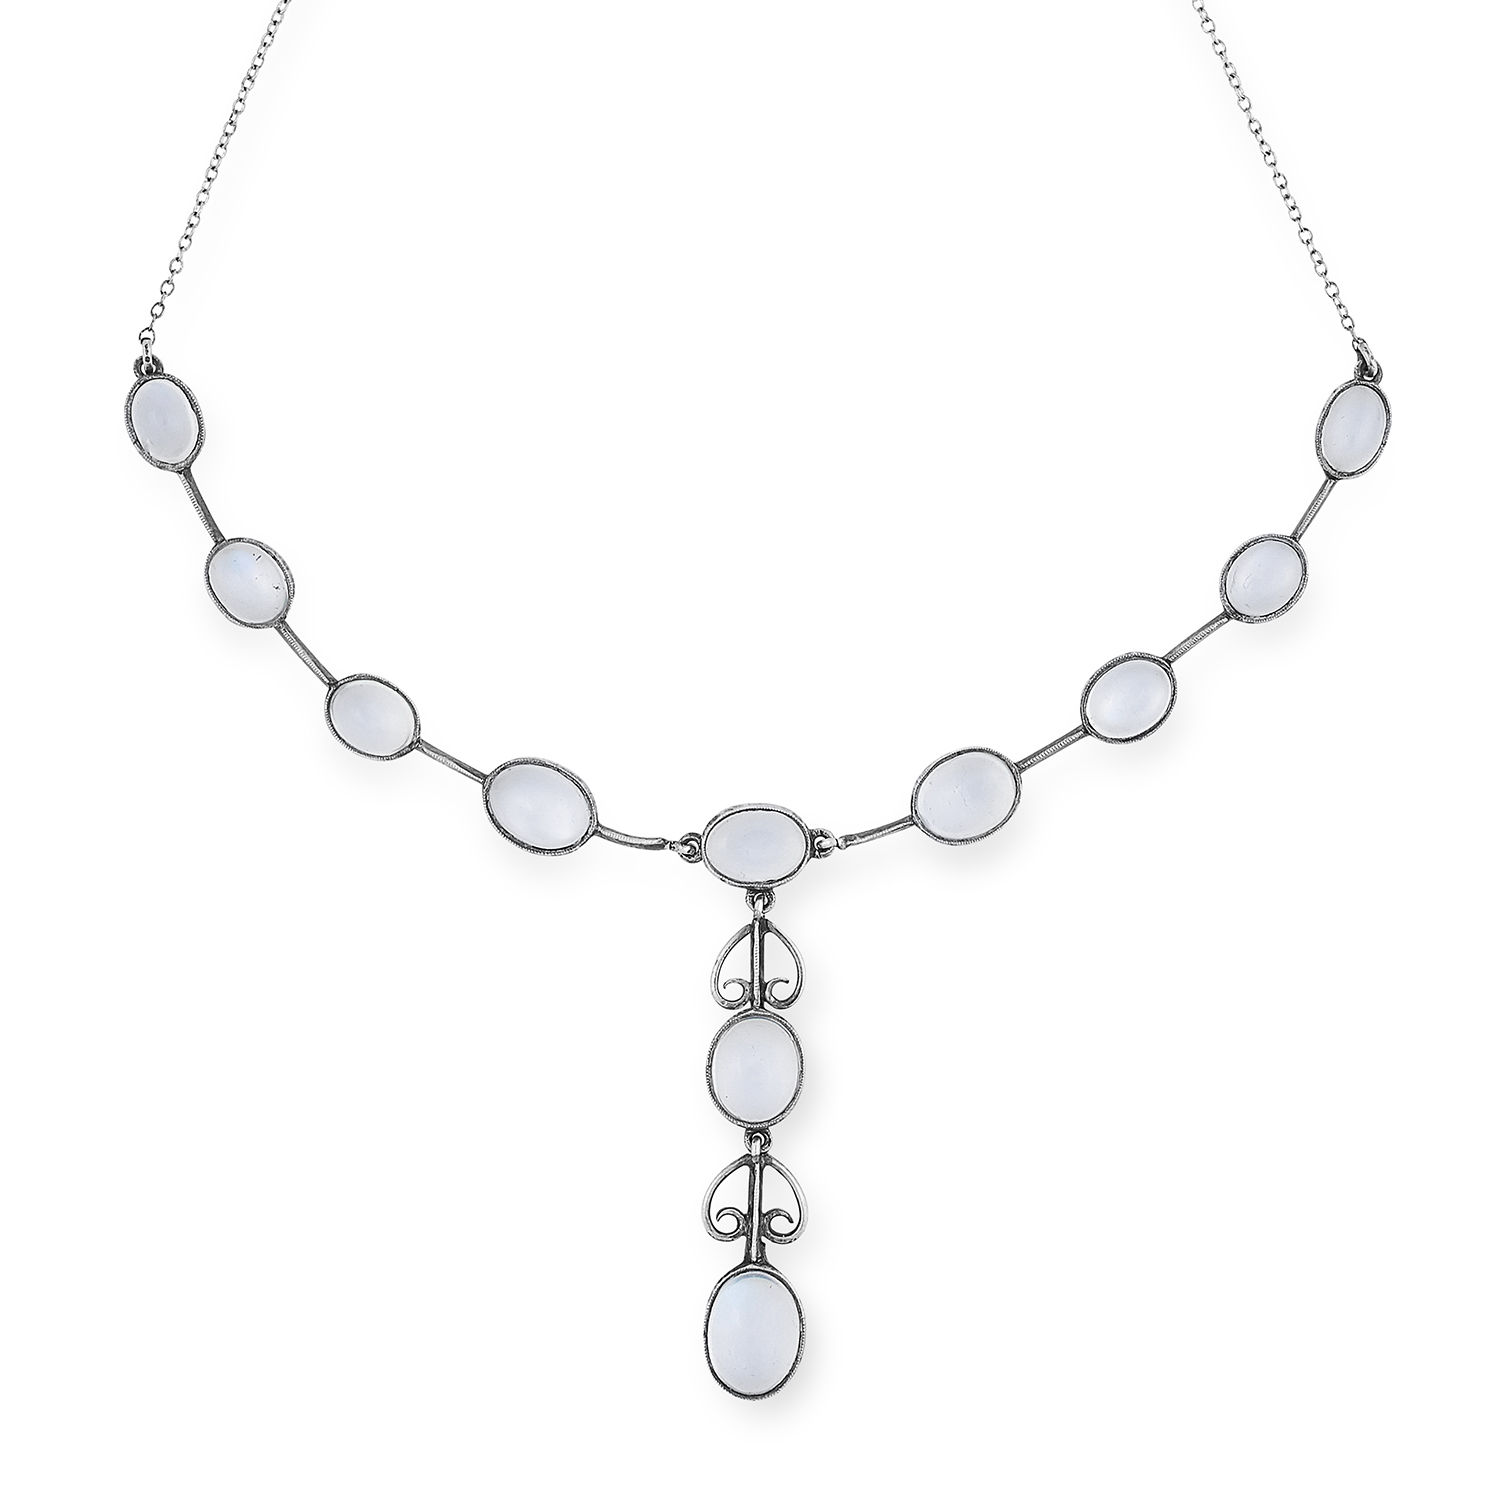 Los 30 - AN ARTS AND CRAFTS MOONSTONE NECKLACE set with cabochon moonstones accented by scrolling motifs,